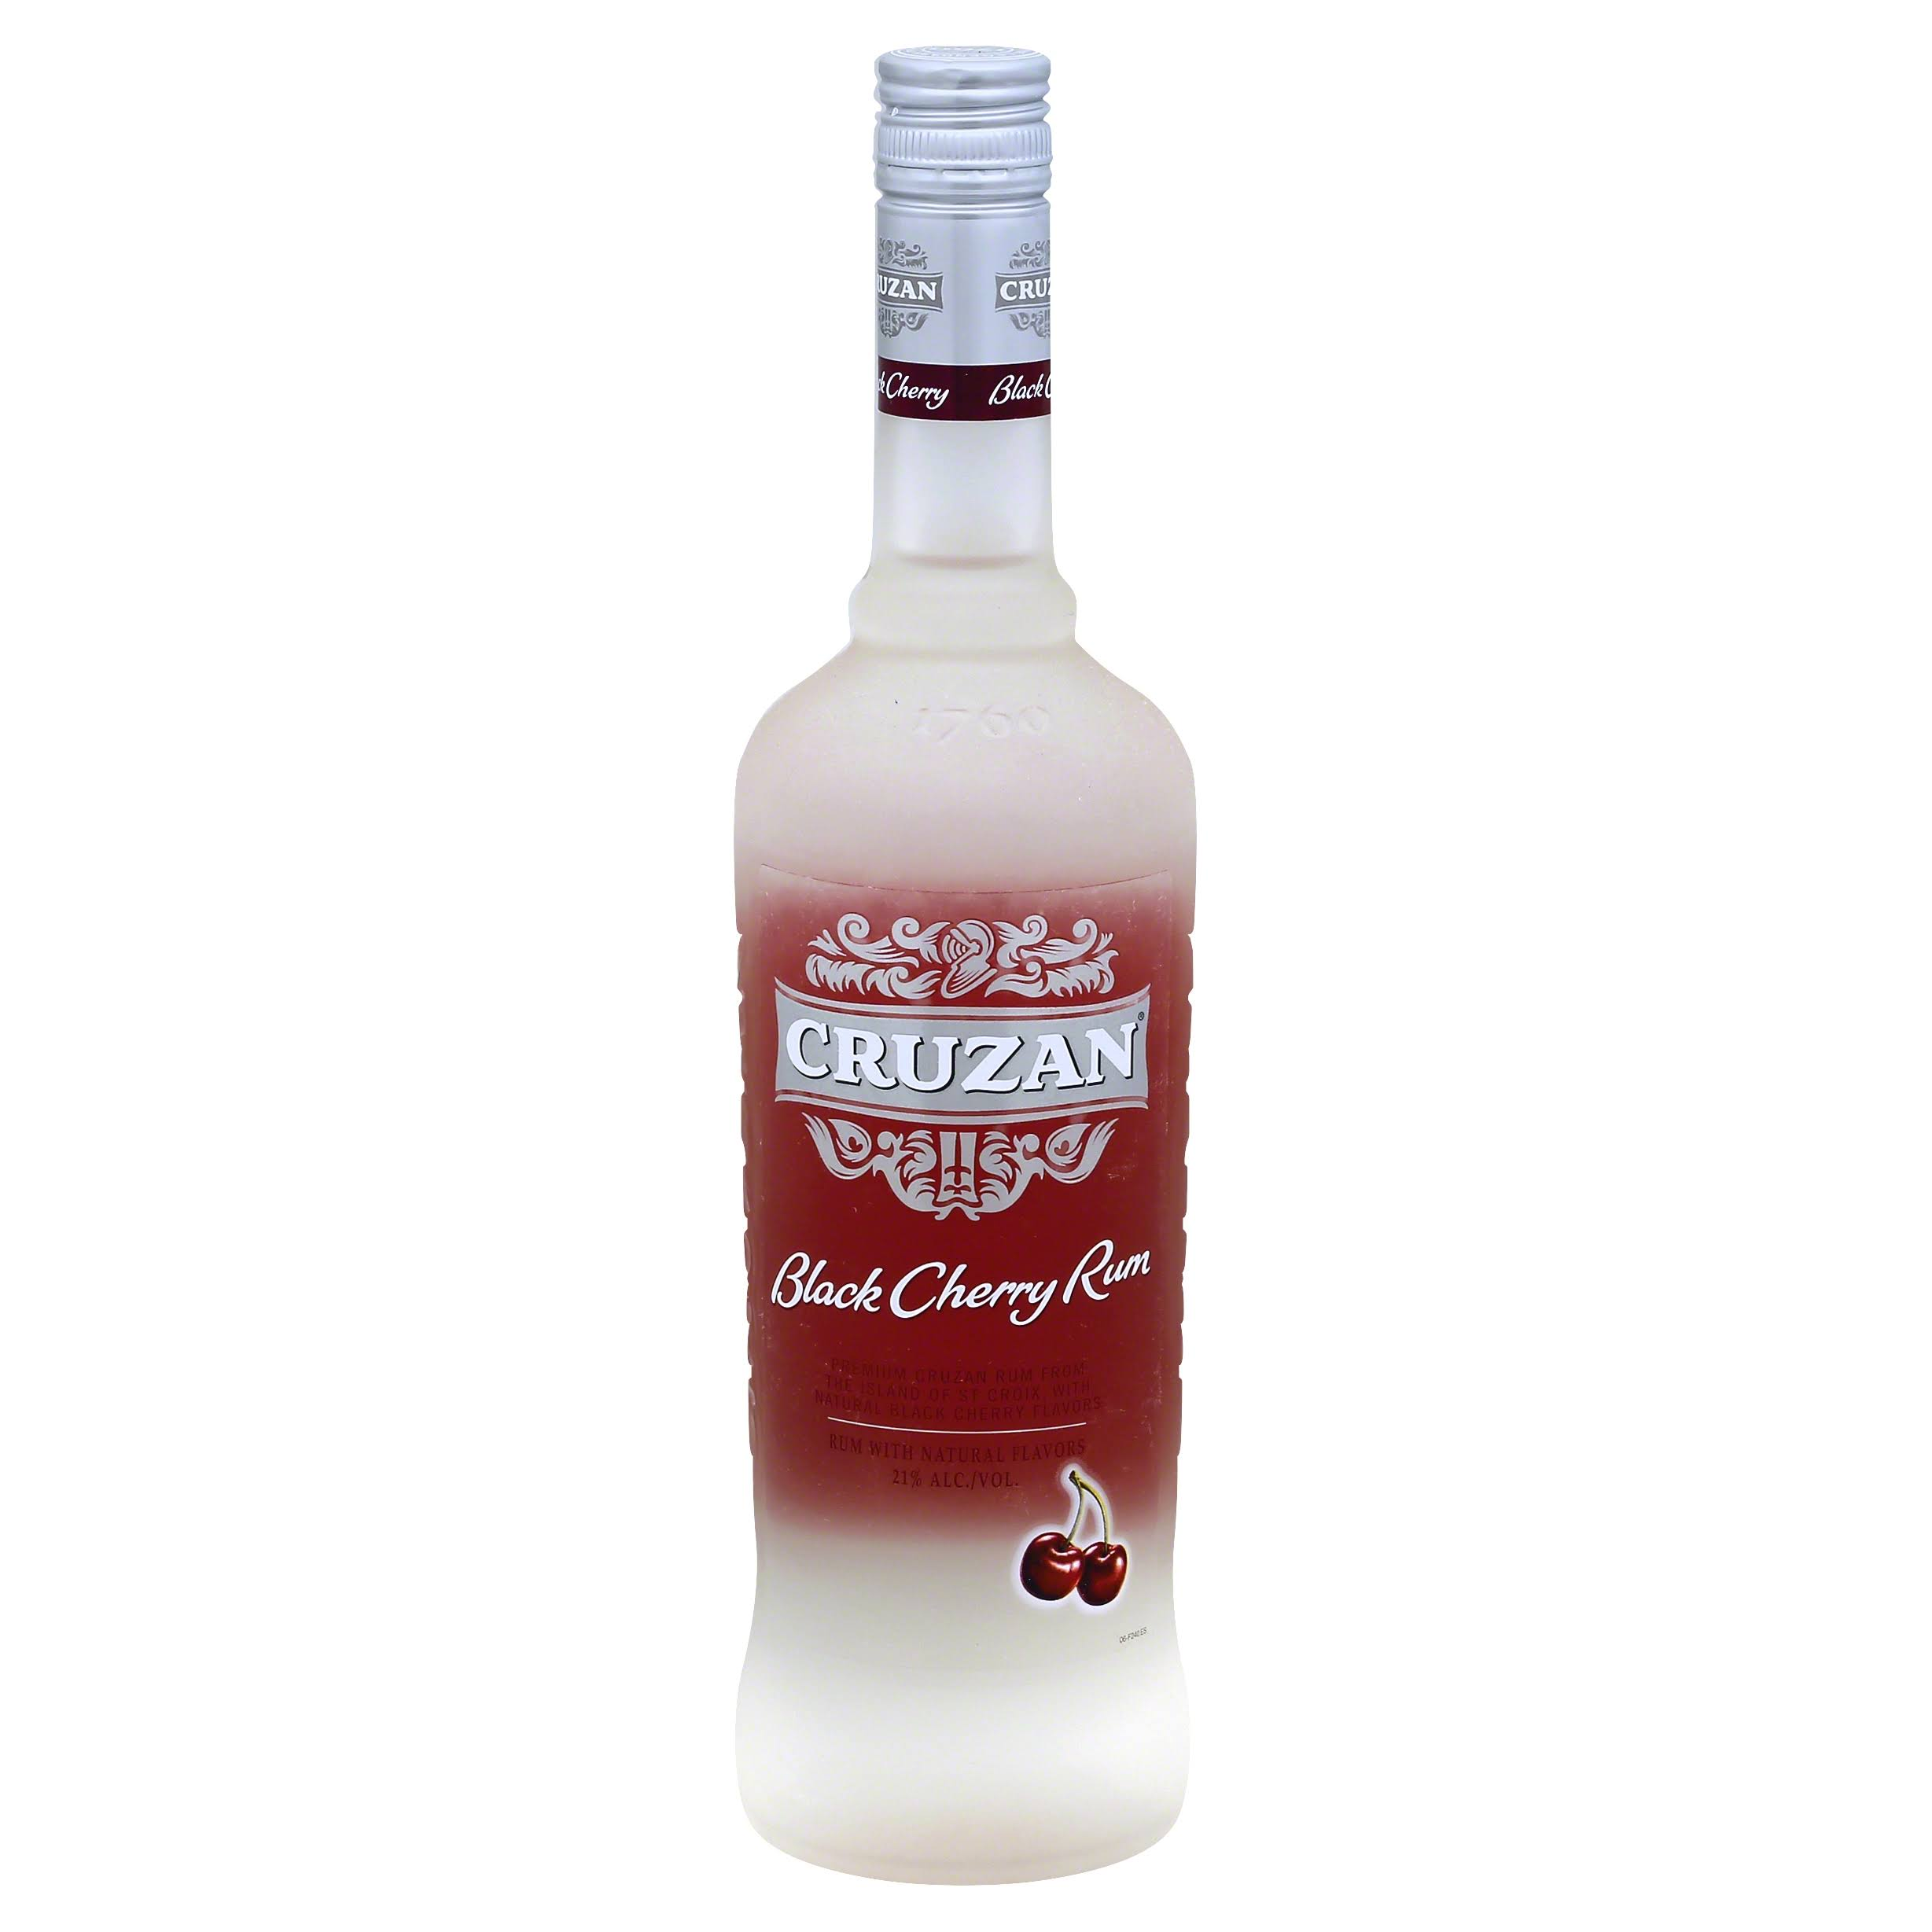 Cruzan Rum, Black Cherry - 750 ml